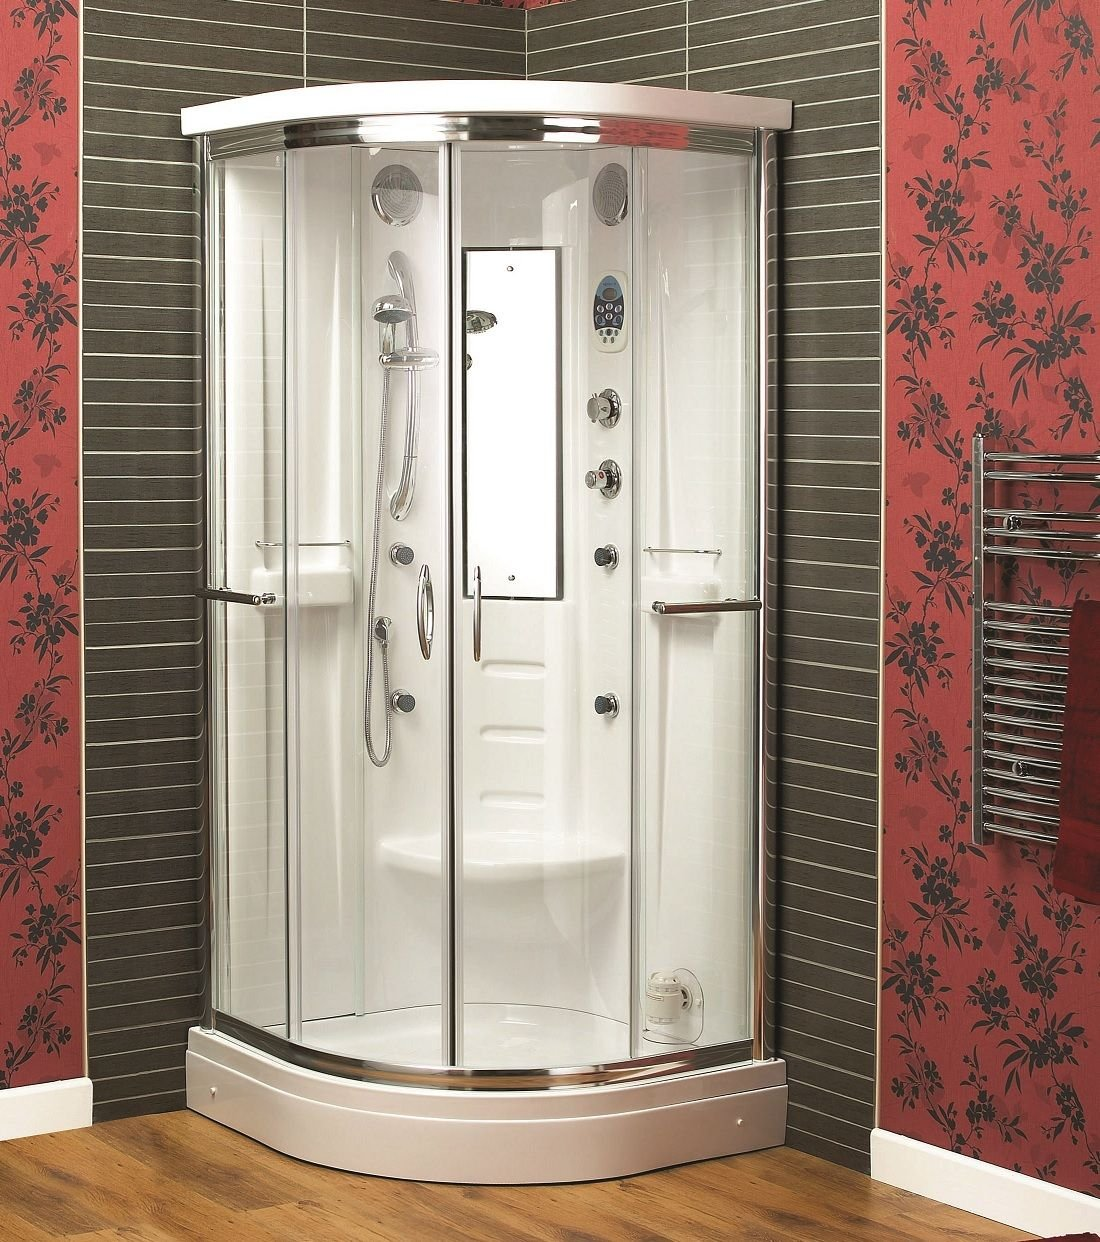 Aqualux Florenta Quadrant Steam Shower Enclosure Cabin 900Mm X 900Mm ...